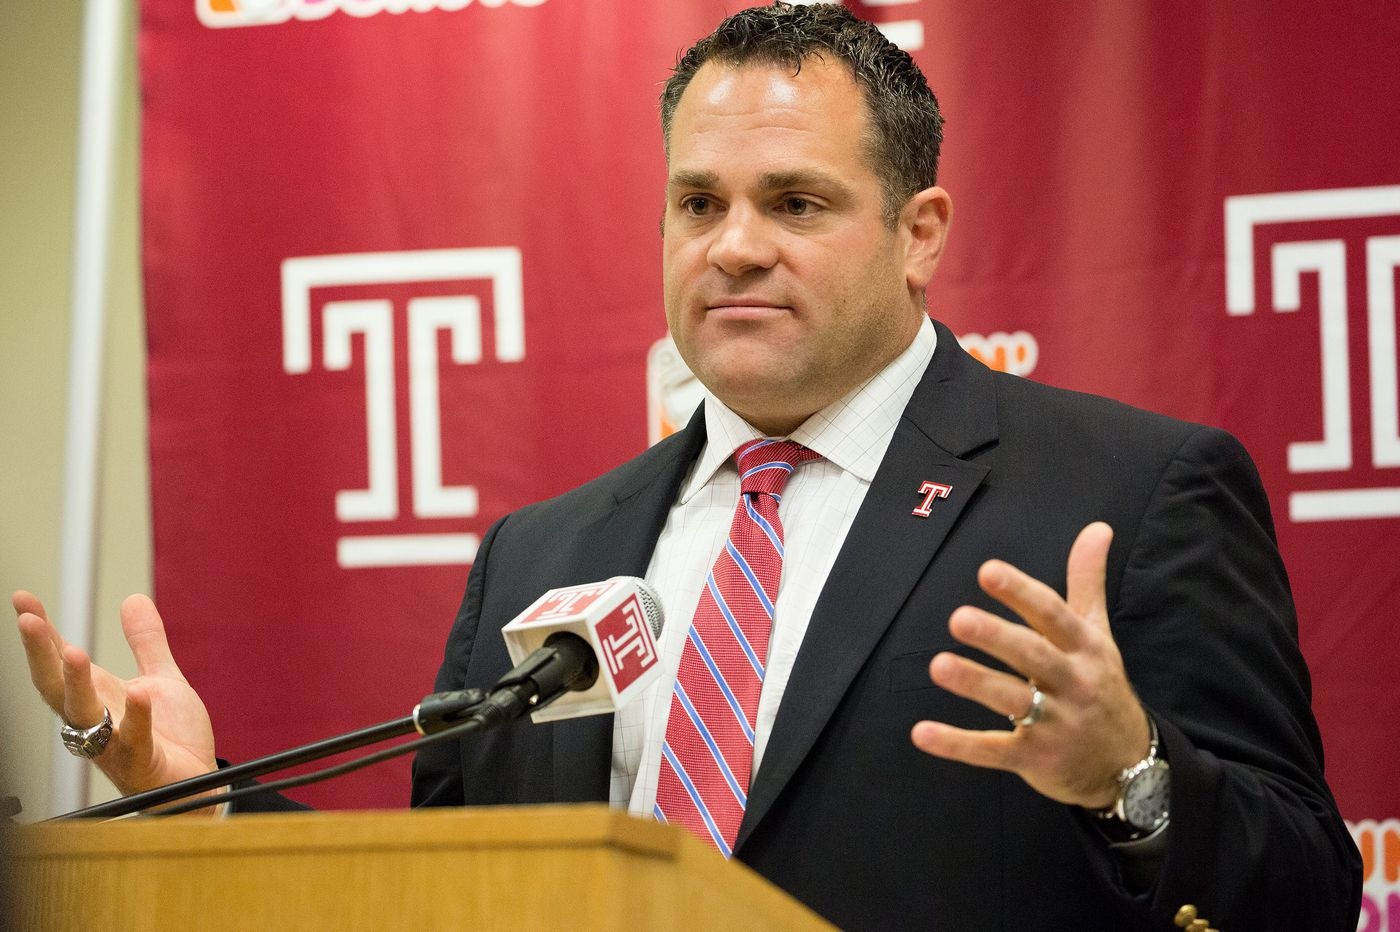 Temple football speeding up interview process for next head coach, source says